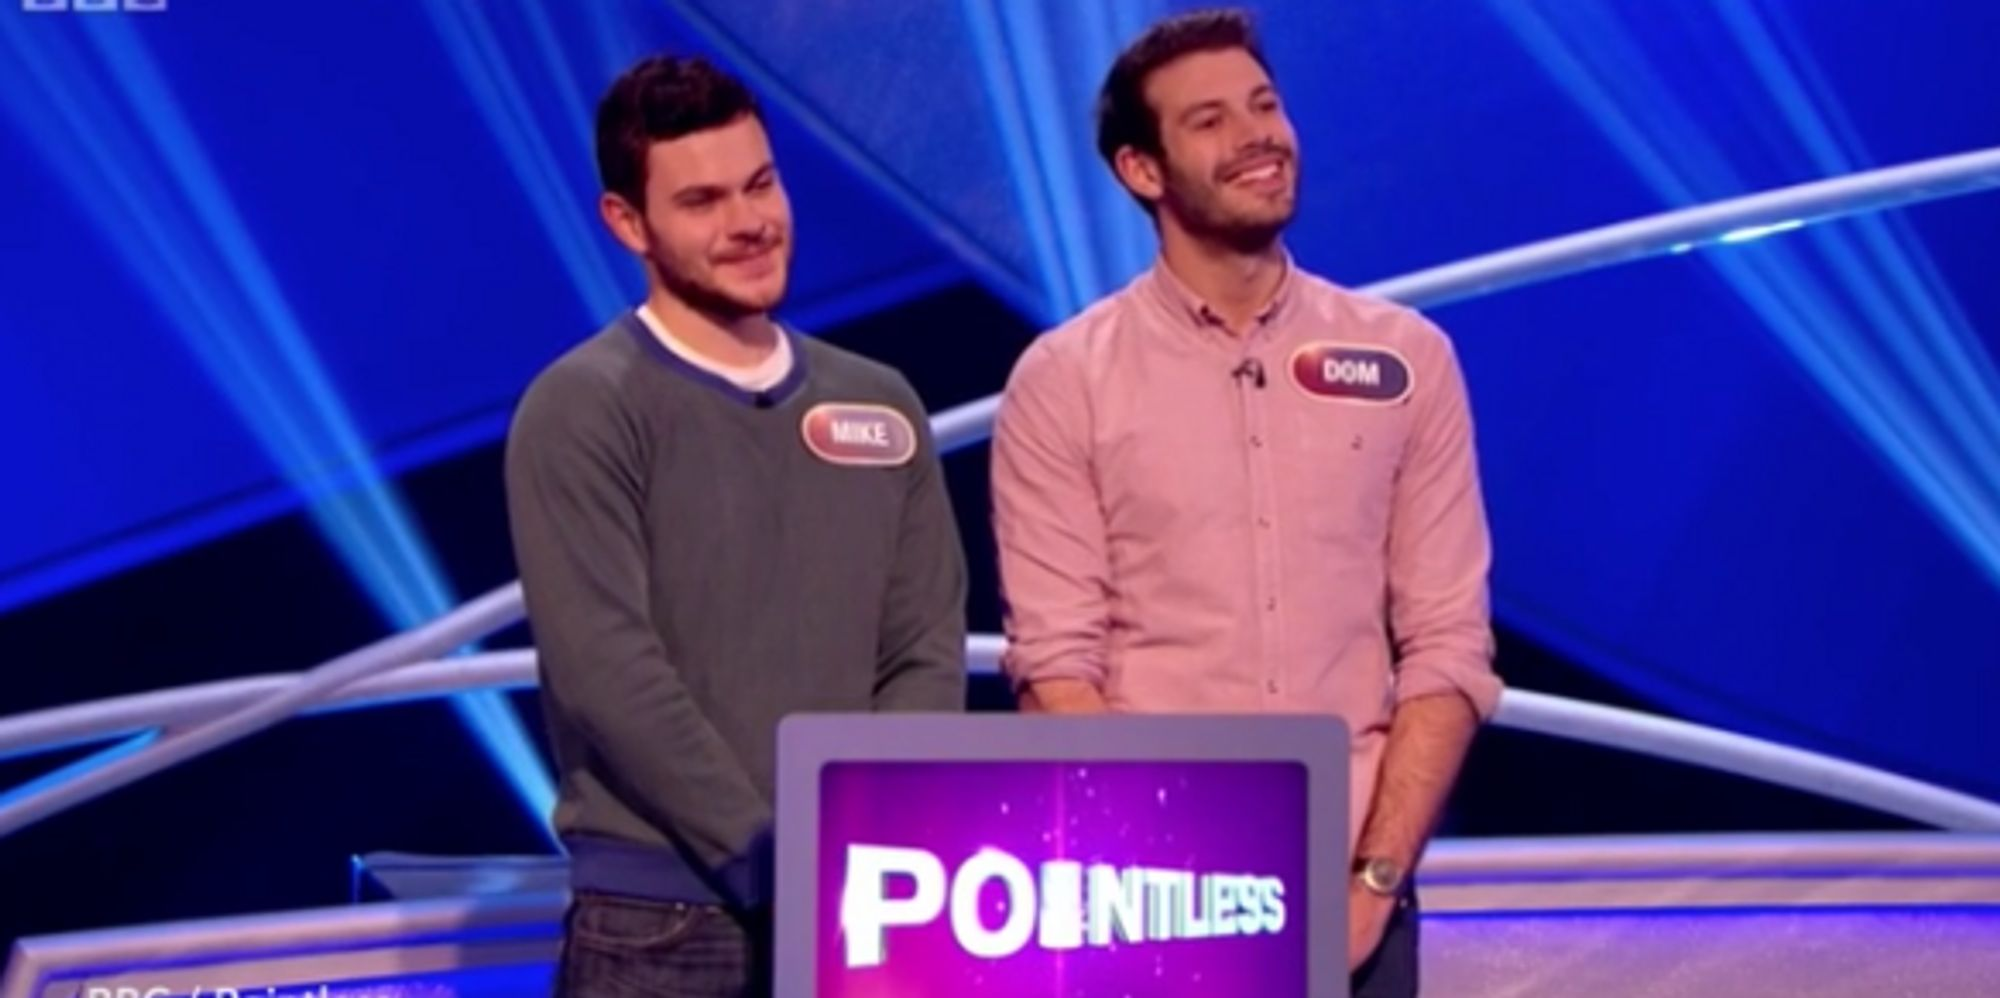 'Pointless' Contestants Win £2,500 Prize Money With 'Wrong Answer'